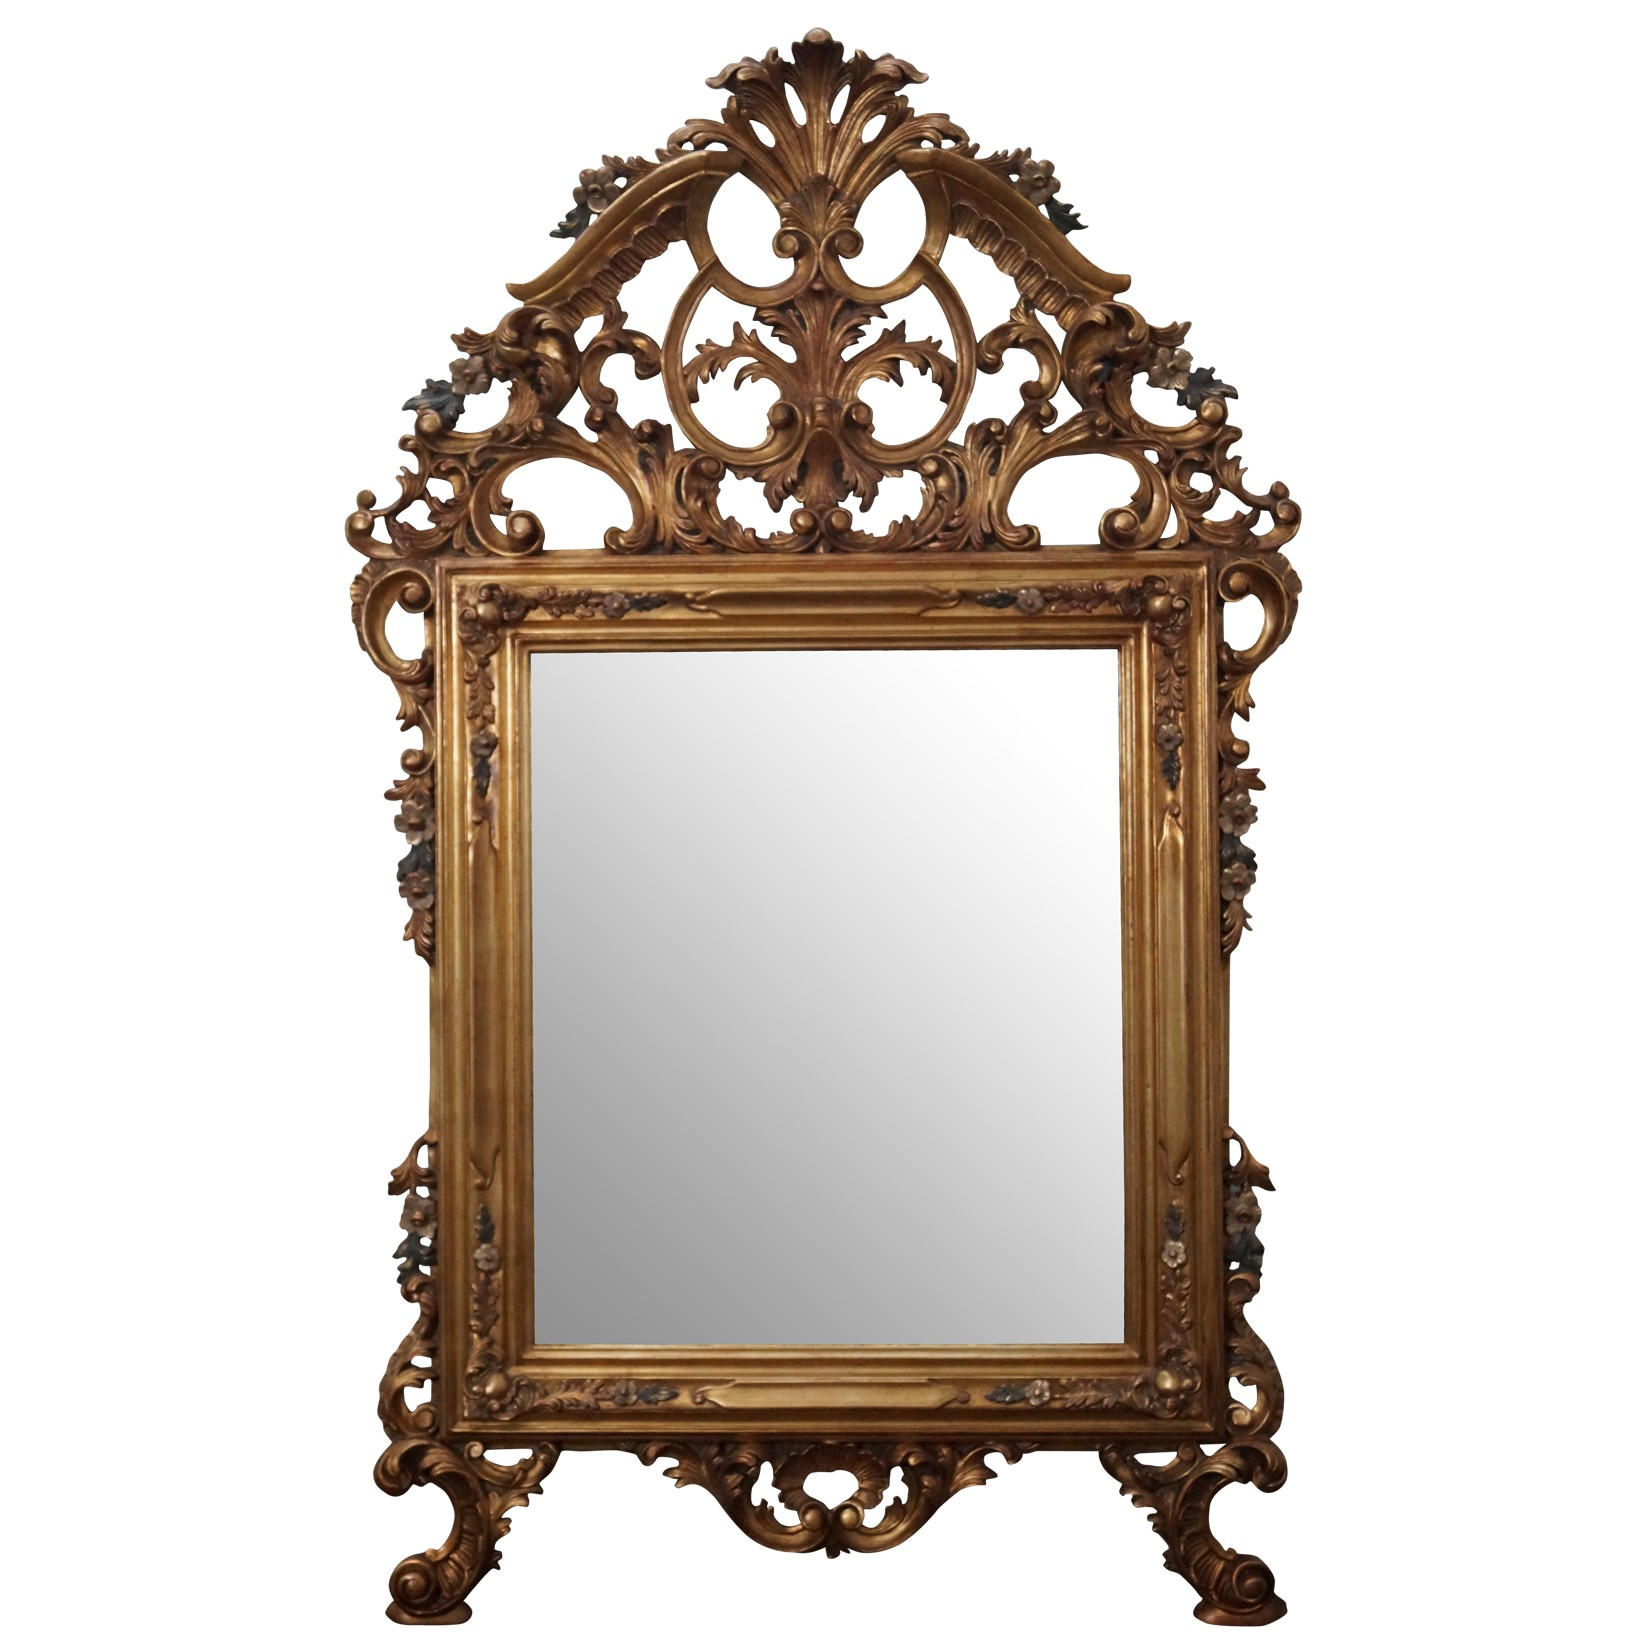 Gold Gilt Wood Carved Rococo Hanging Wall Mirror